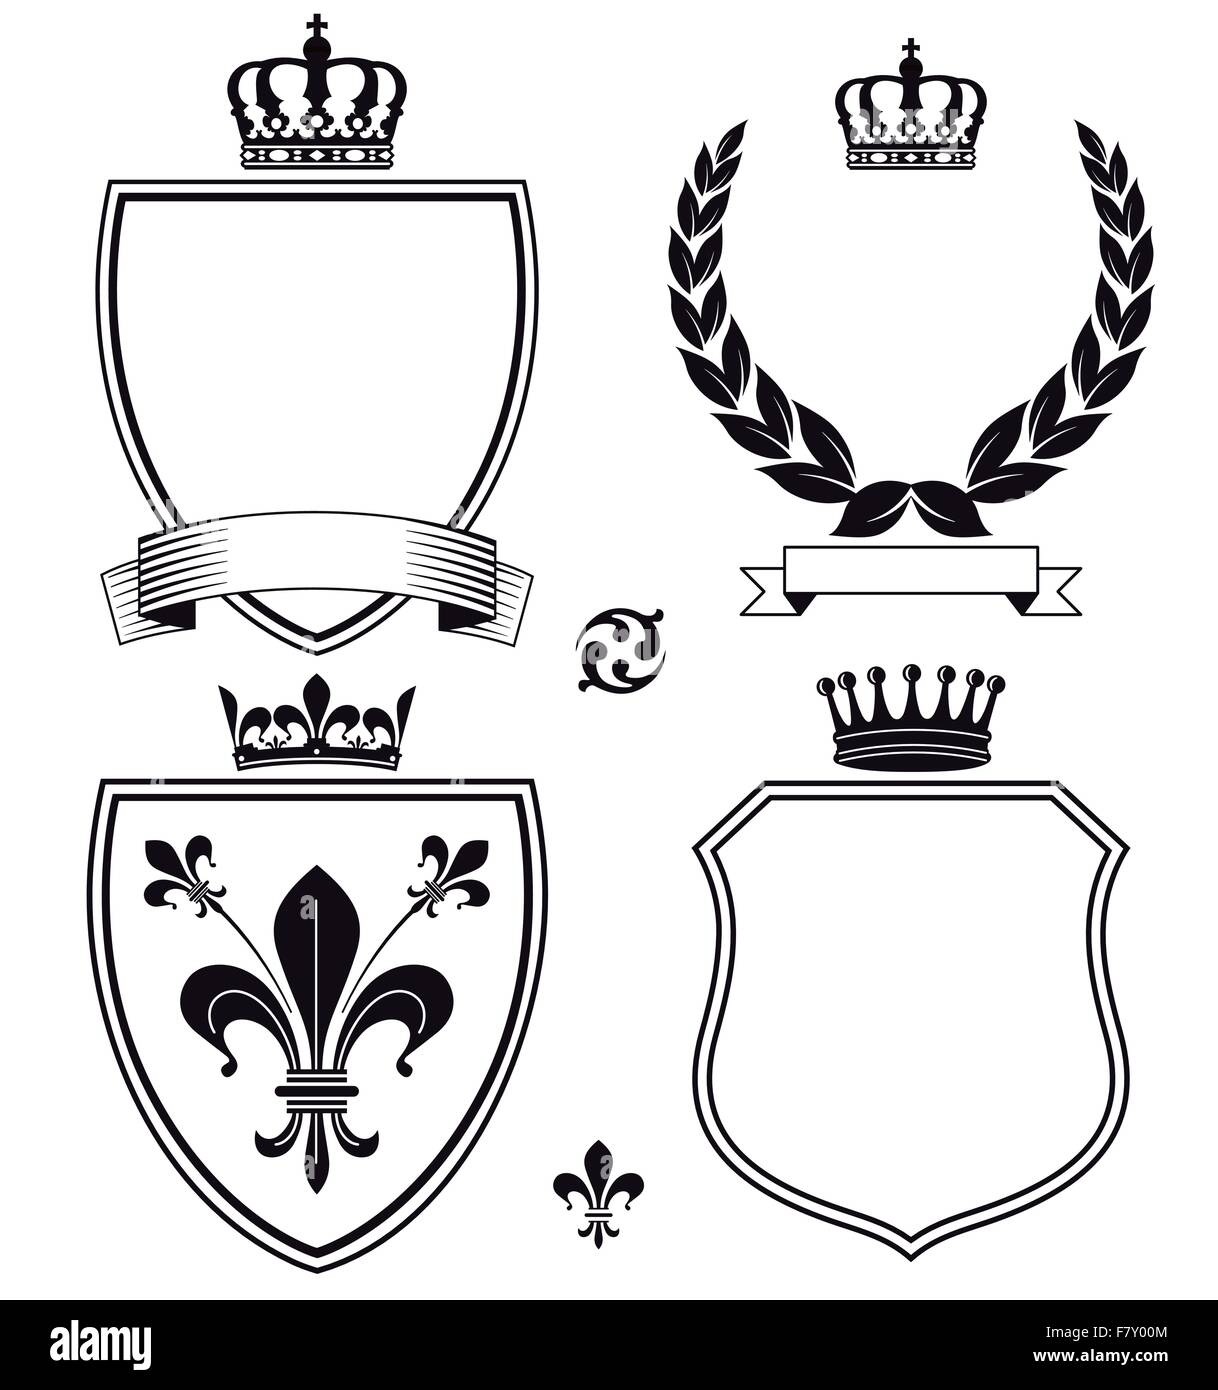 Signs and Heraldic Crests - Stock Image